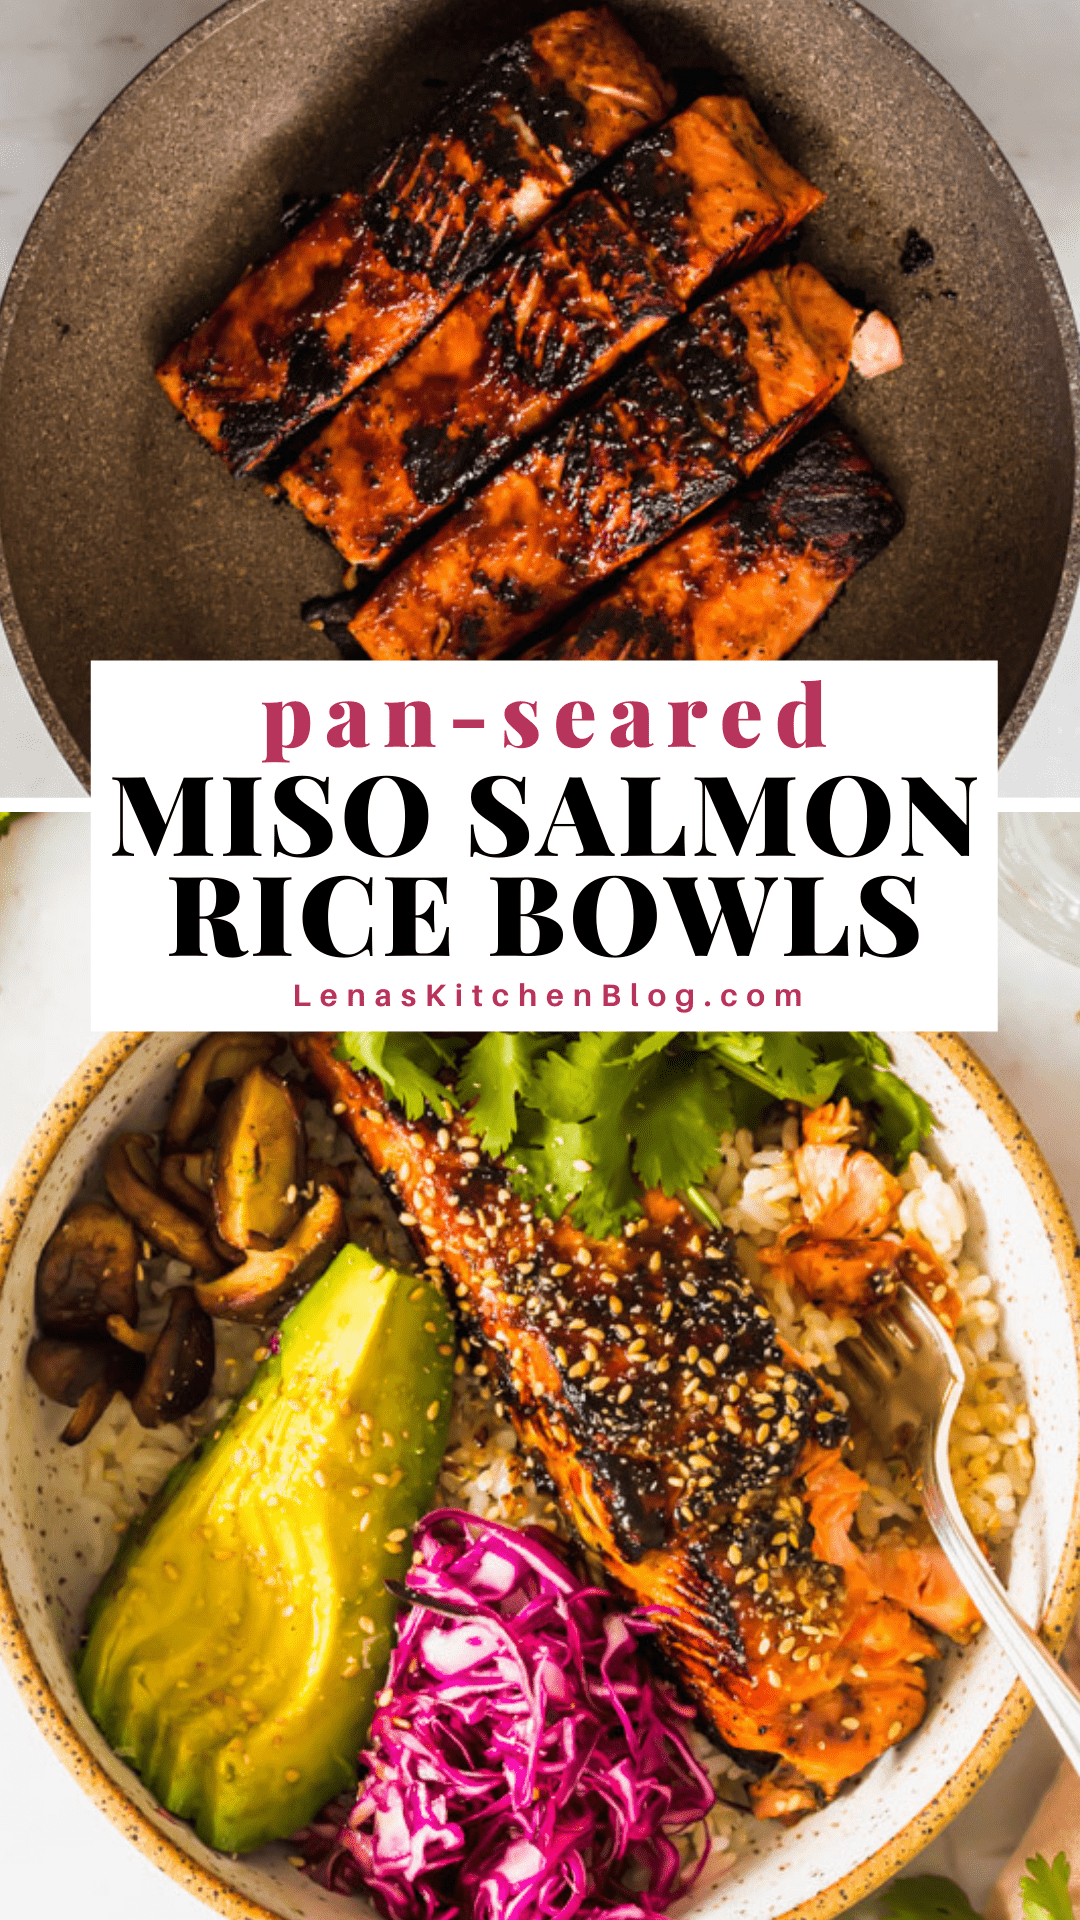 pinterest image with 2 photos of cooked salmon in a pan and a white bowl with cooked salmon, rice, avocado, purple cabbage, mushrooms, and green cilantro.